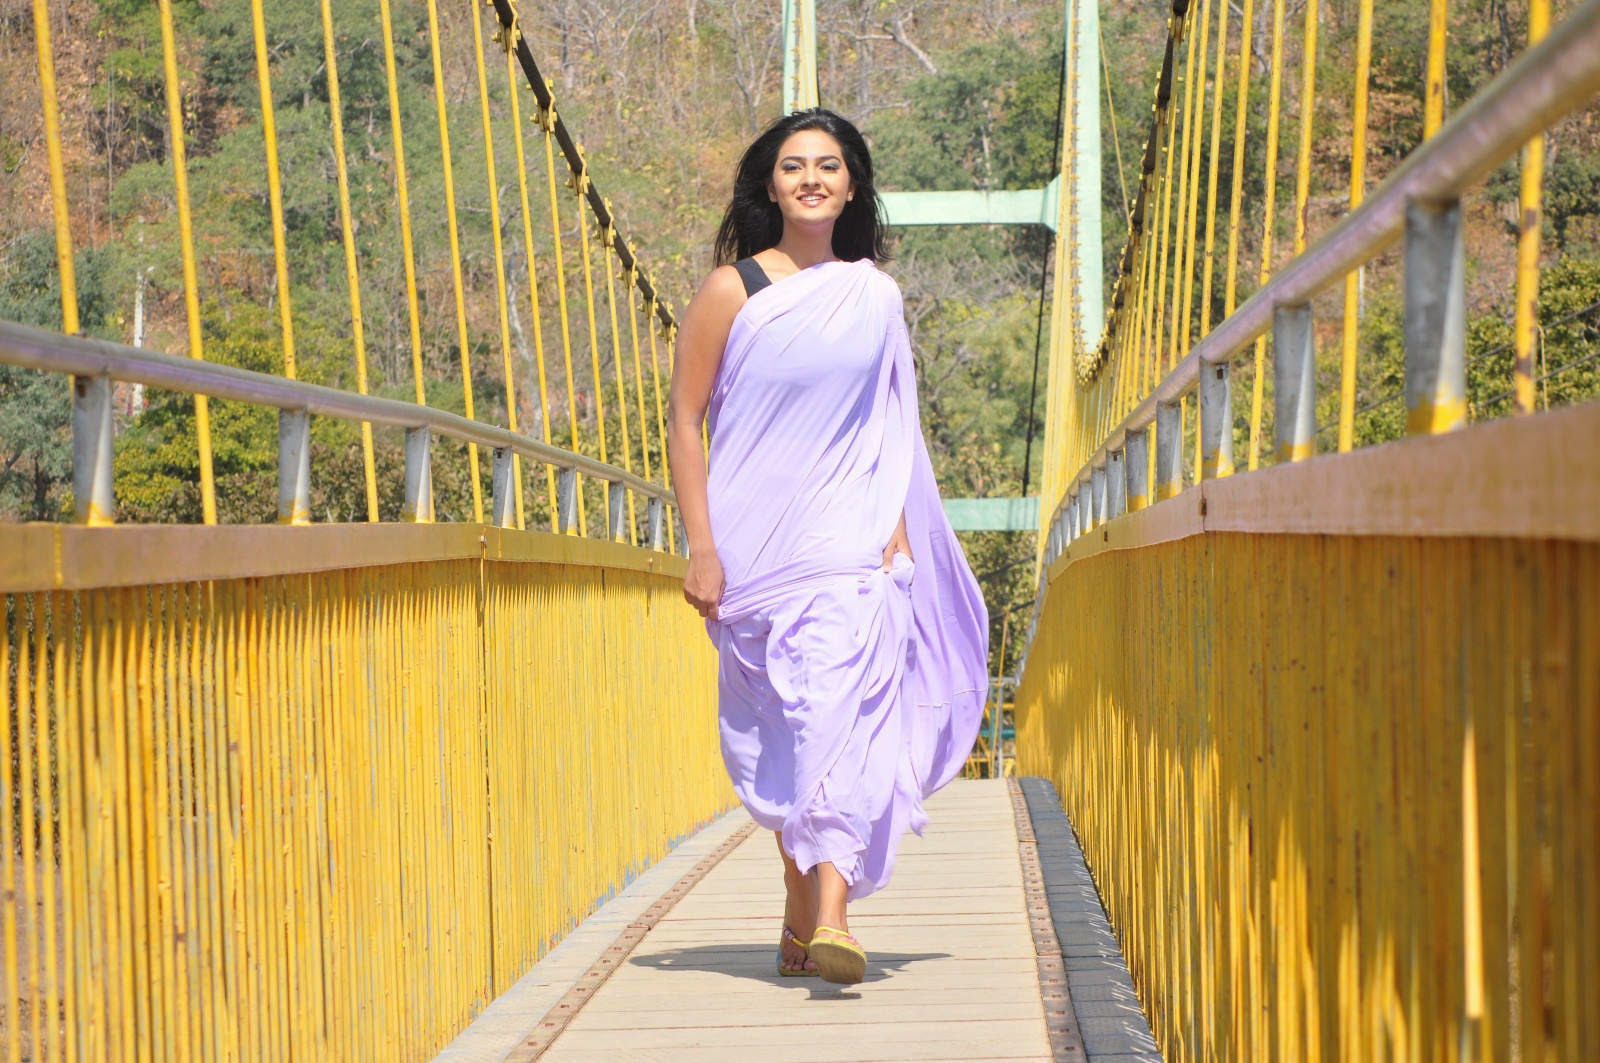 Neha Deshpande Photos in Violet Saree From The Bells Movie, Neha Deshpande Sare HD Wallpapers from The Bells Movie